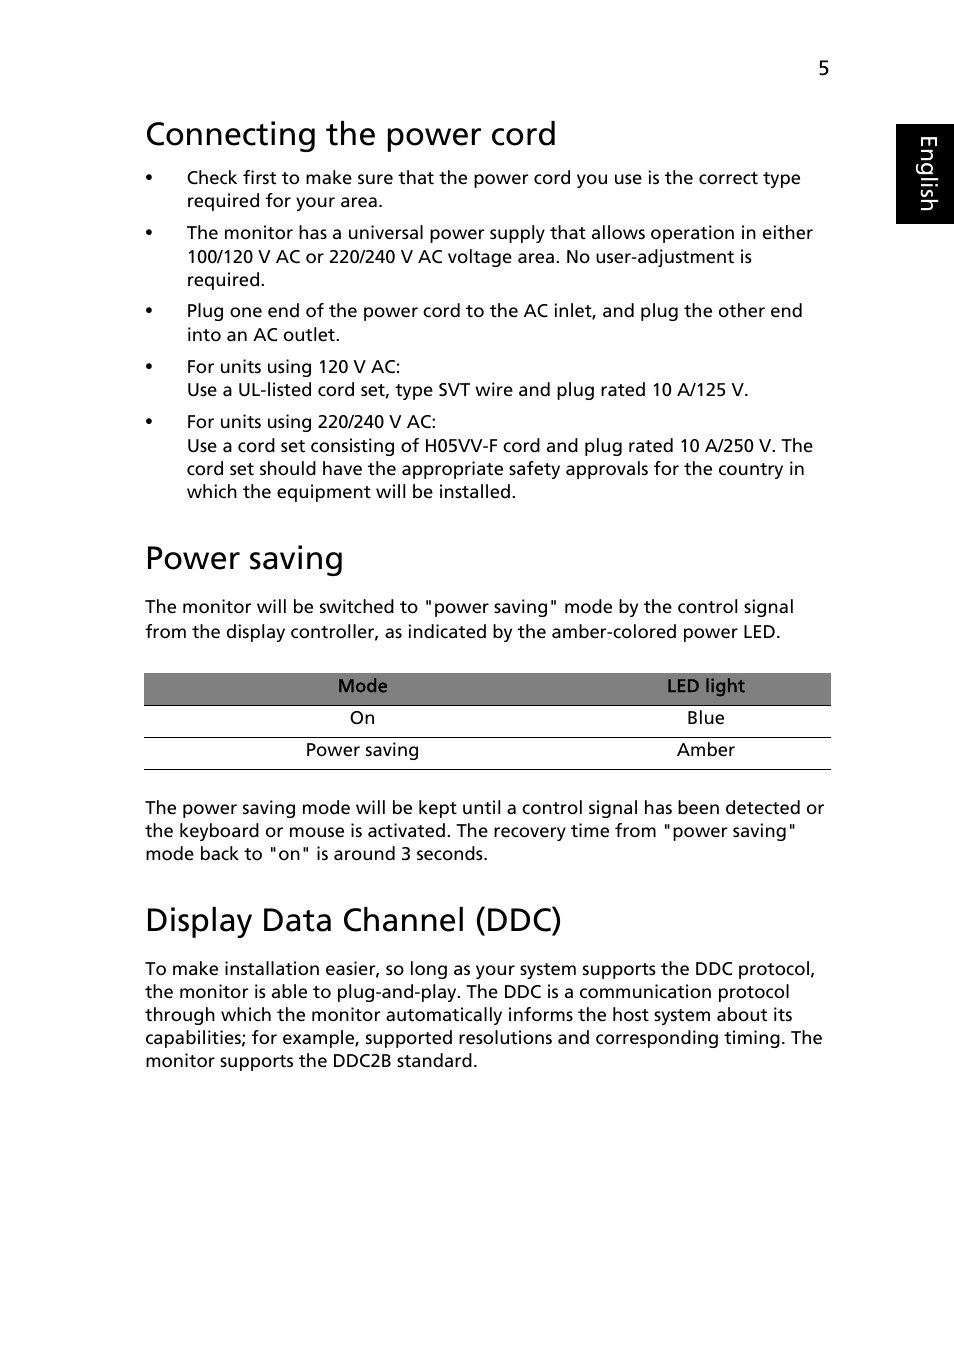 Connecting The Power Cord Saving Display Data Channel Ddc Voltage Monitor Which Uses A Led To Show Status Of Supply Acer K202hql User Manual Page 15 27